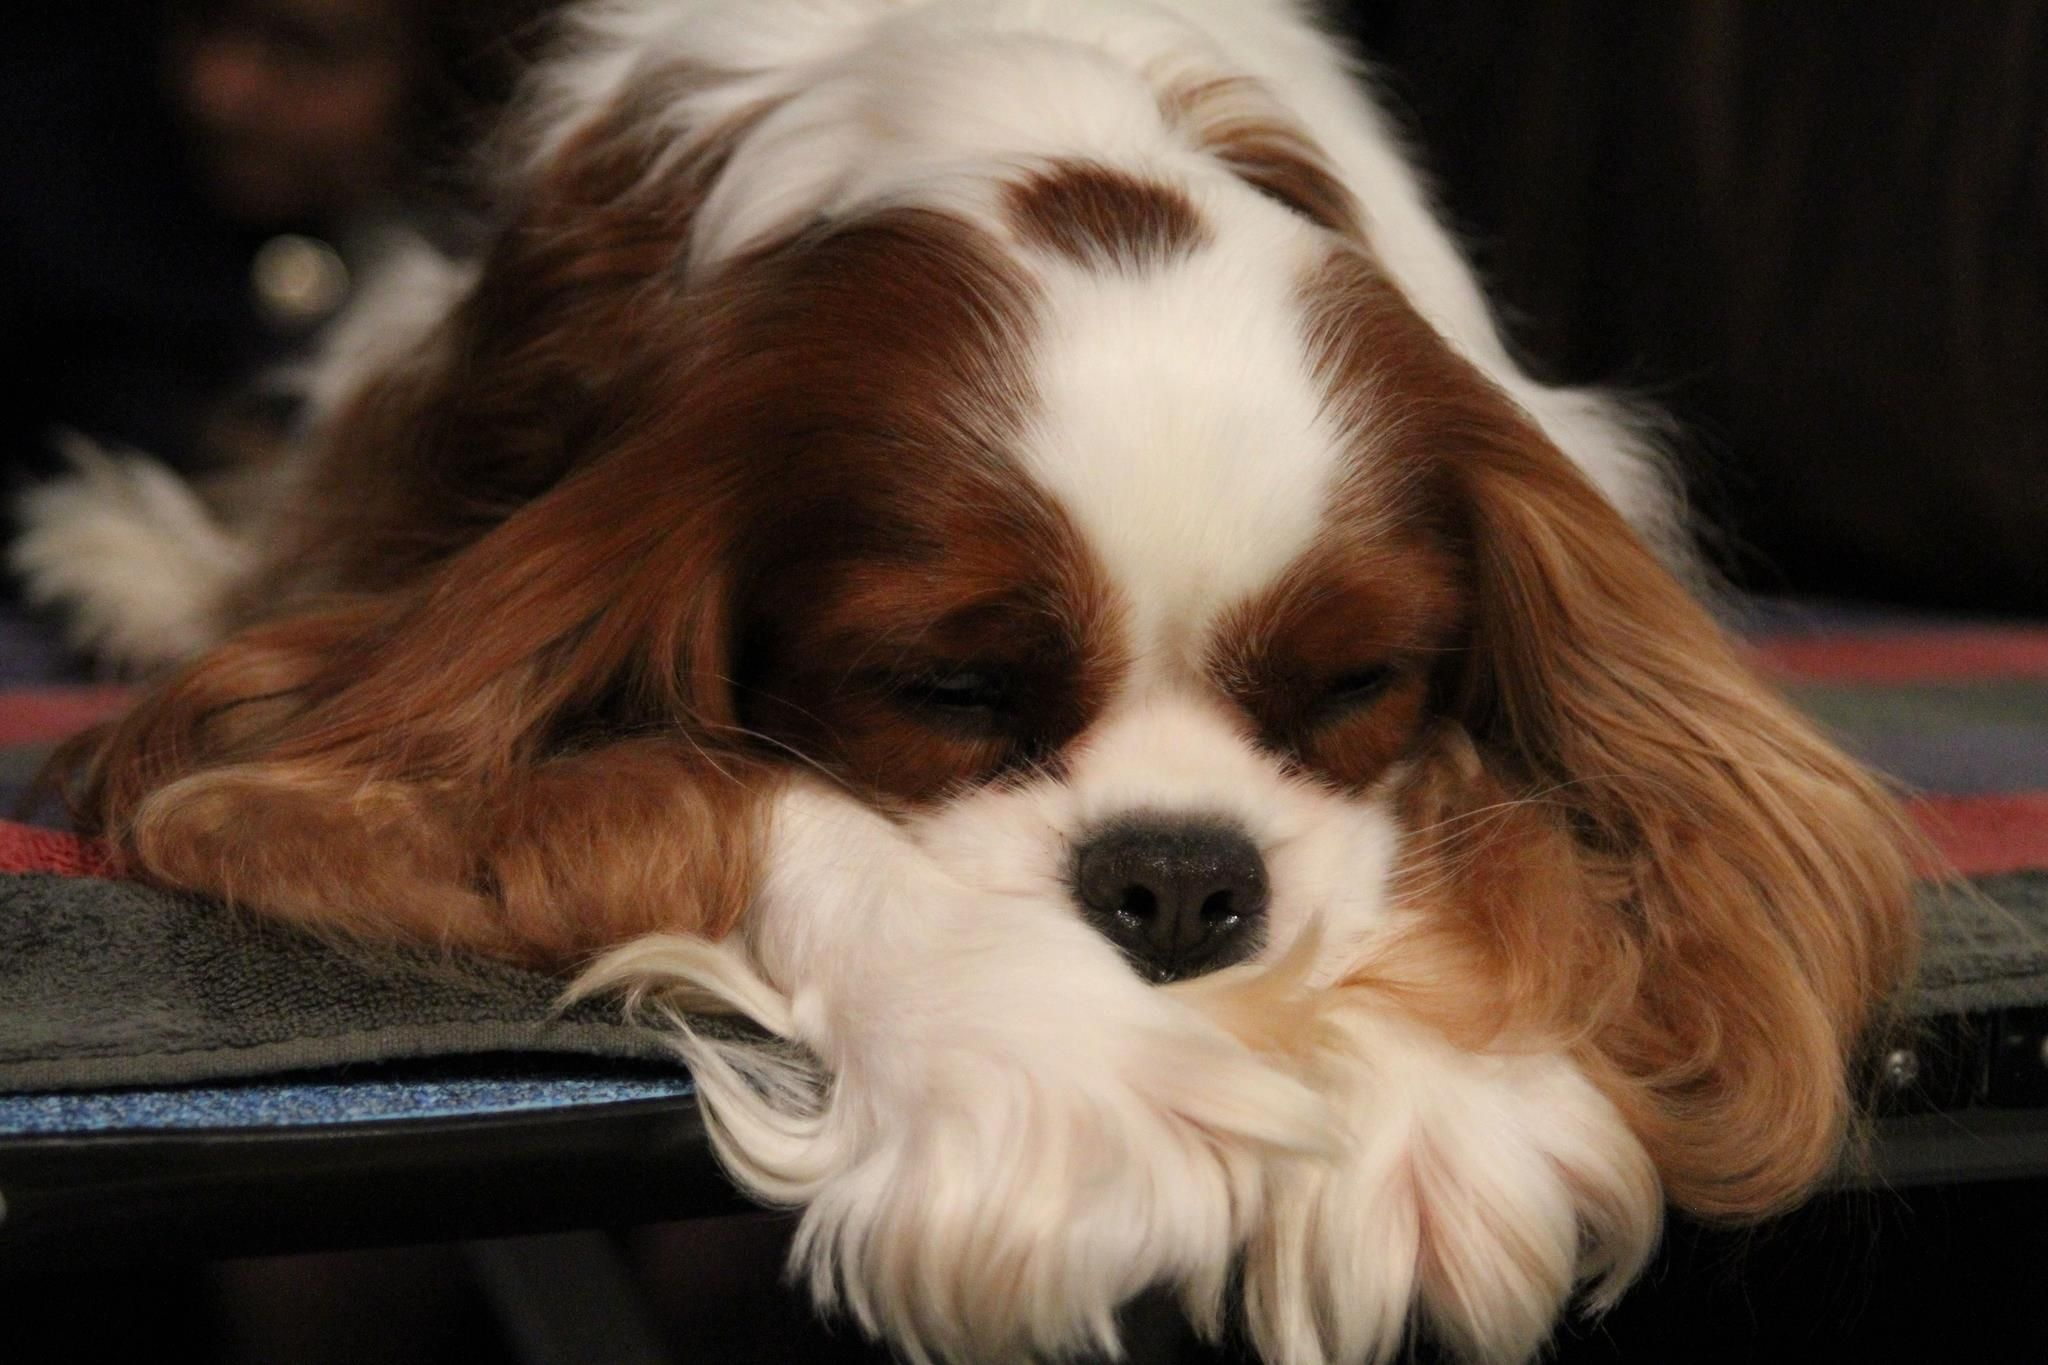 Westminster Kennel Club Dog Show There Is A Time For Many Words And Cavalier King Charles Dog King Charles Dog King Charles Cavalier Spaniel Puppy